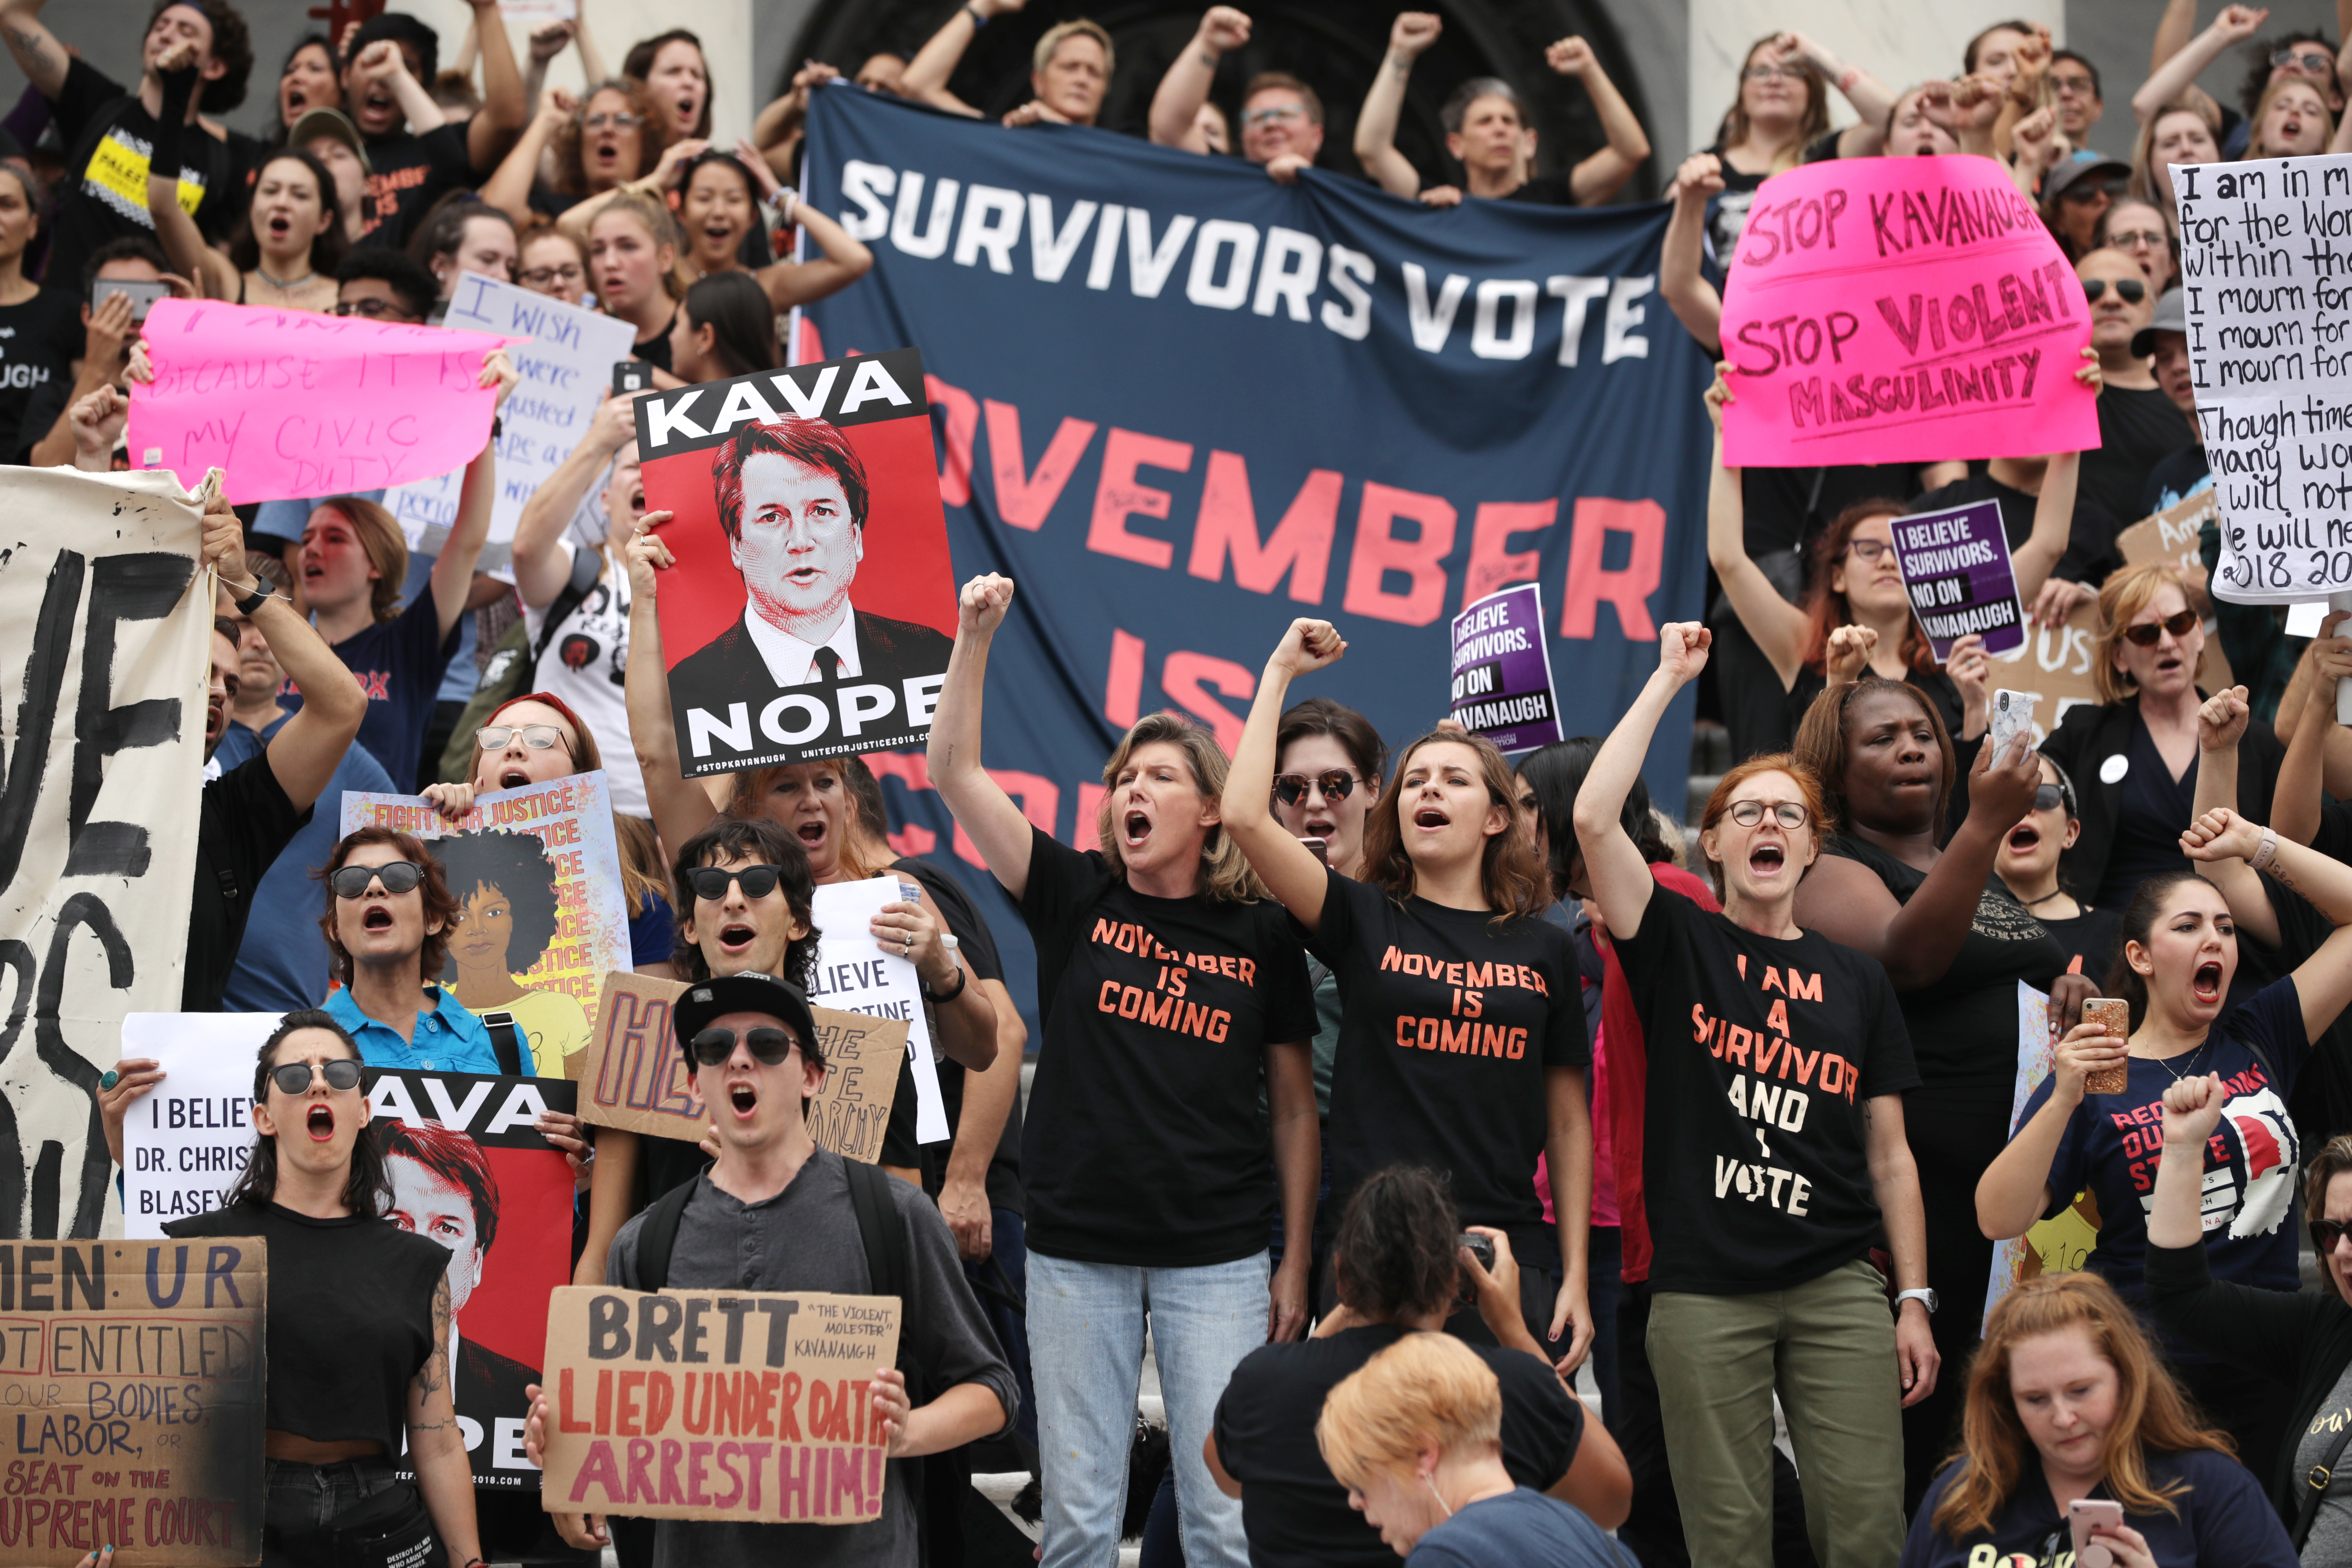 Hundreds of protesters occupy the east front of the U.S. Capitol to demonstrate against the confirmation of Justice Brett Kavanaugh on October 06, 2018. (Chip Somodevilla/Getty Images)